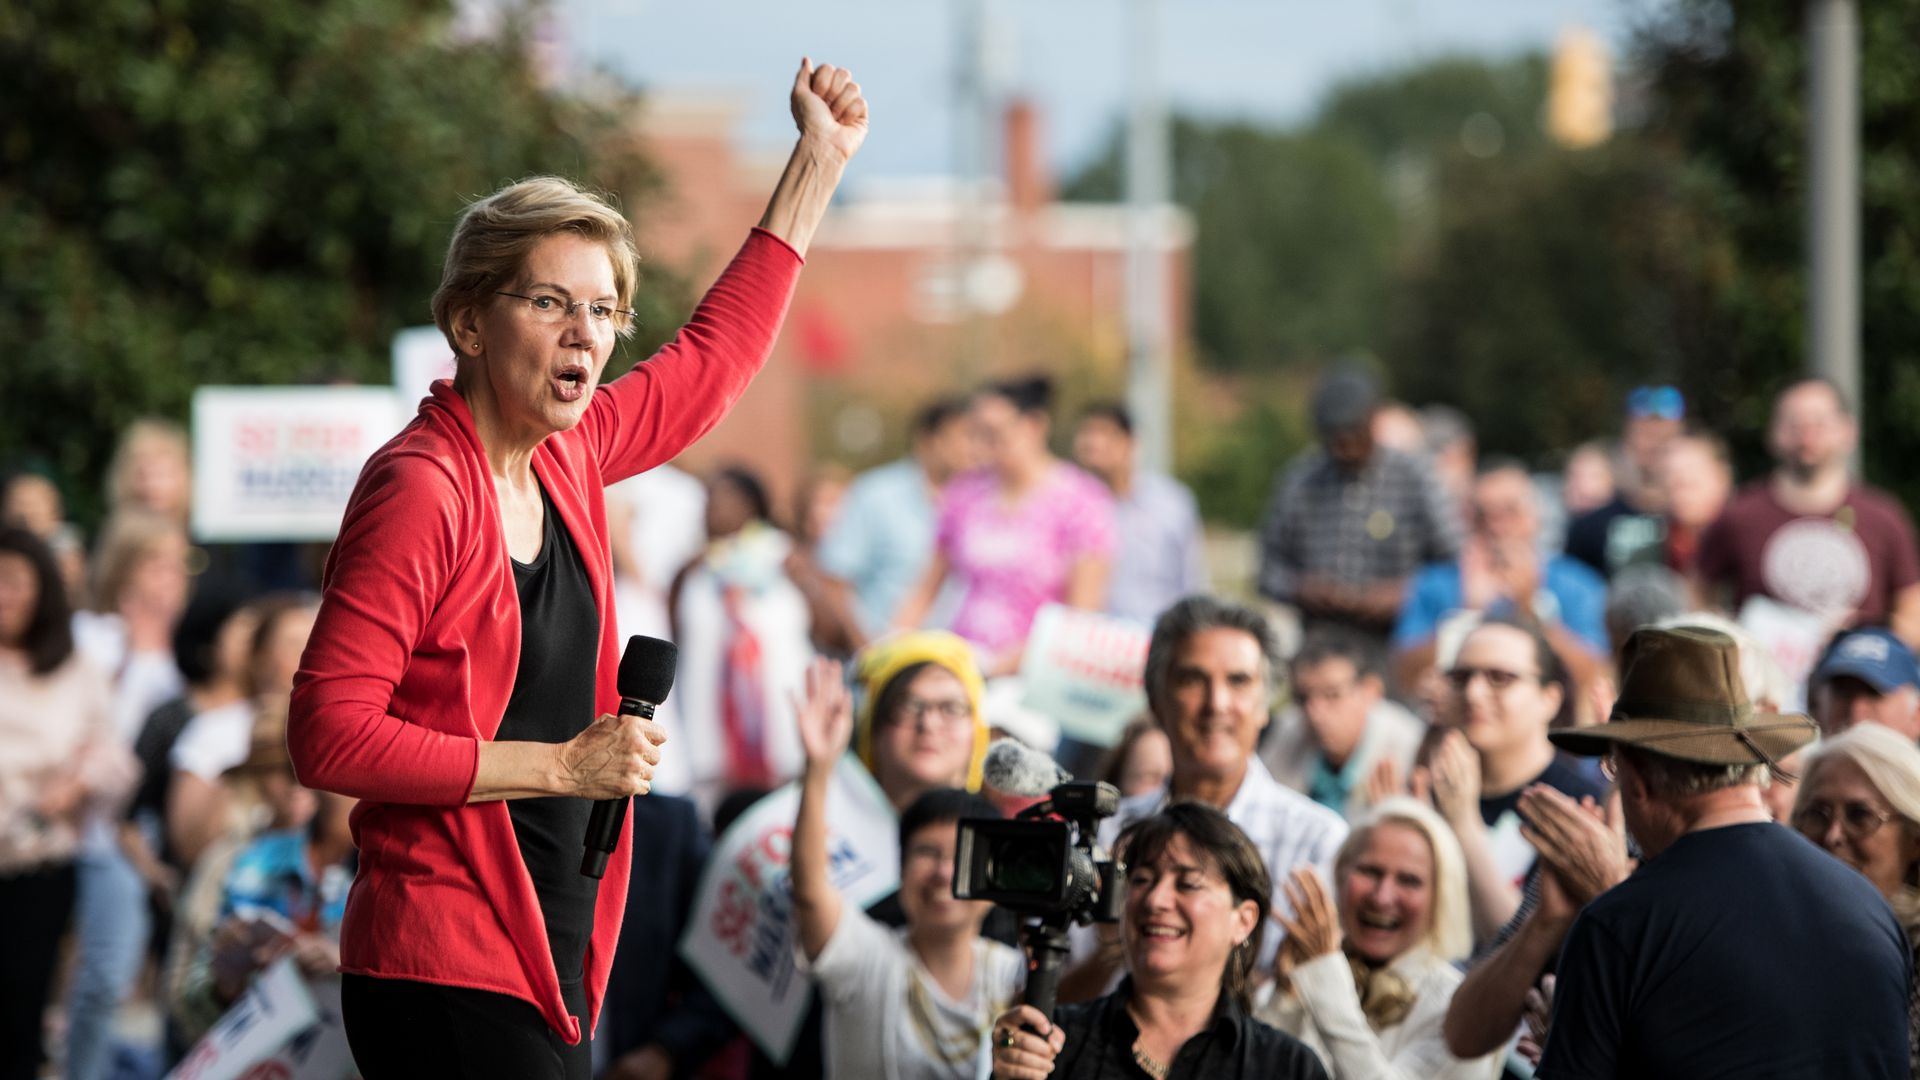 Elizabeth Warren, with her arm raised in a fist, speaks before a rally.